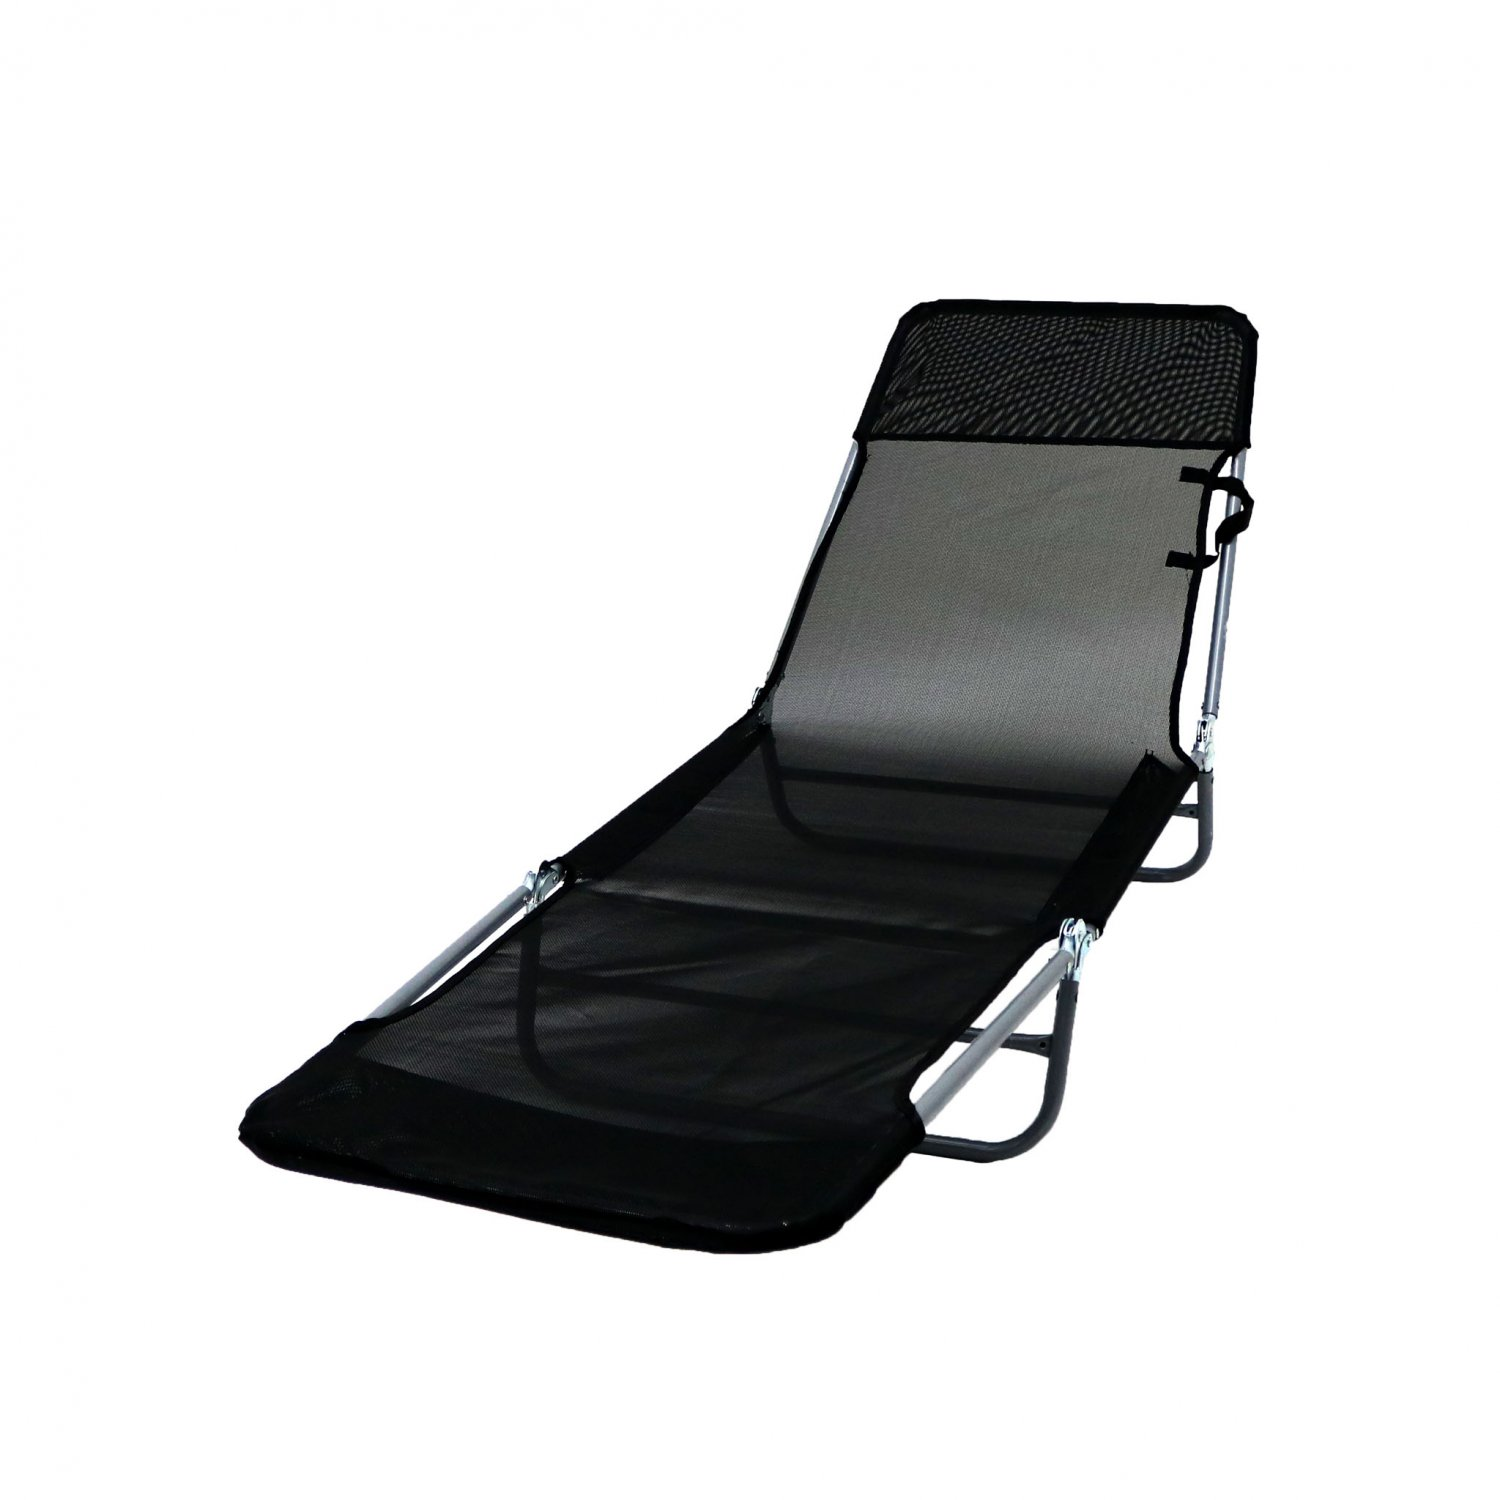 Folding Reclining Sun Lounger Beach Garden C&ing Bed Chair  sc 1 st  Oypla & Folding Reclining Sun Lounger Beach Garden Camping Bed Chair ... islam-shia.org